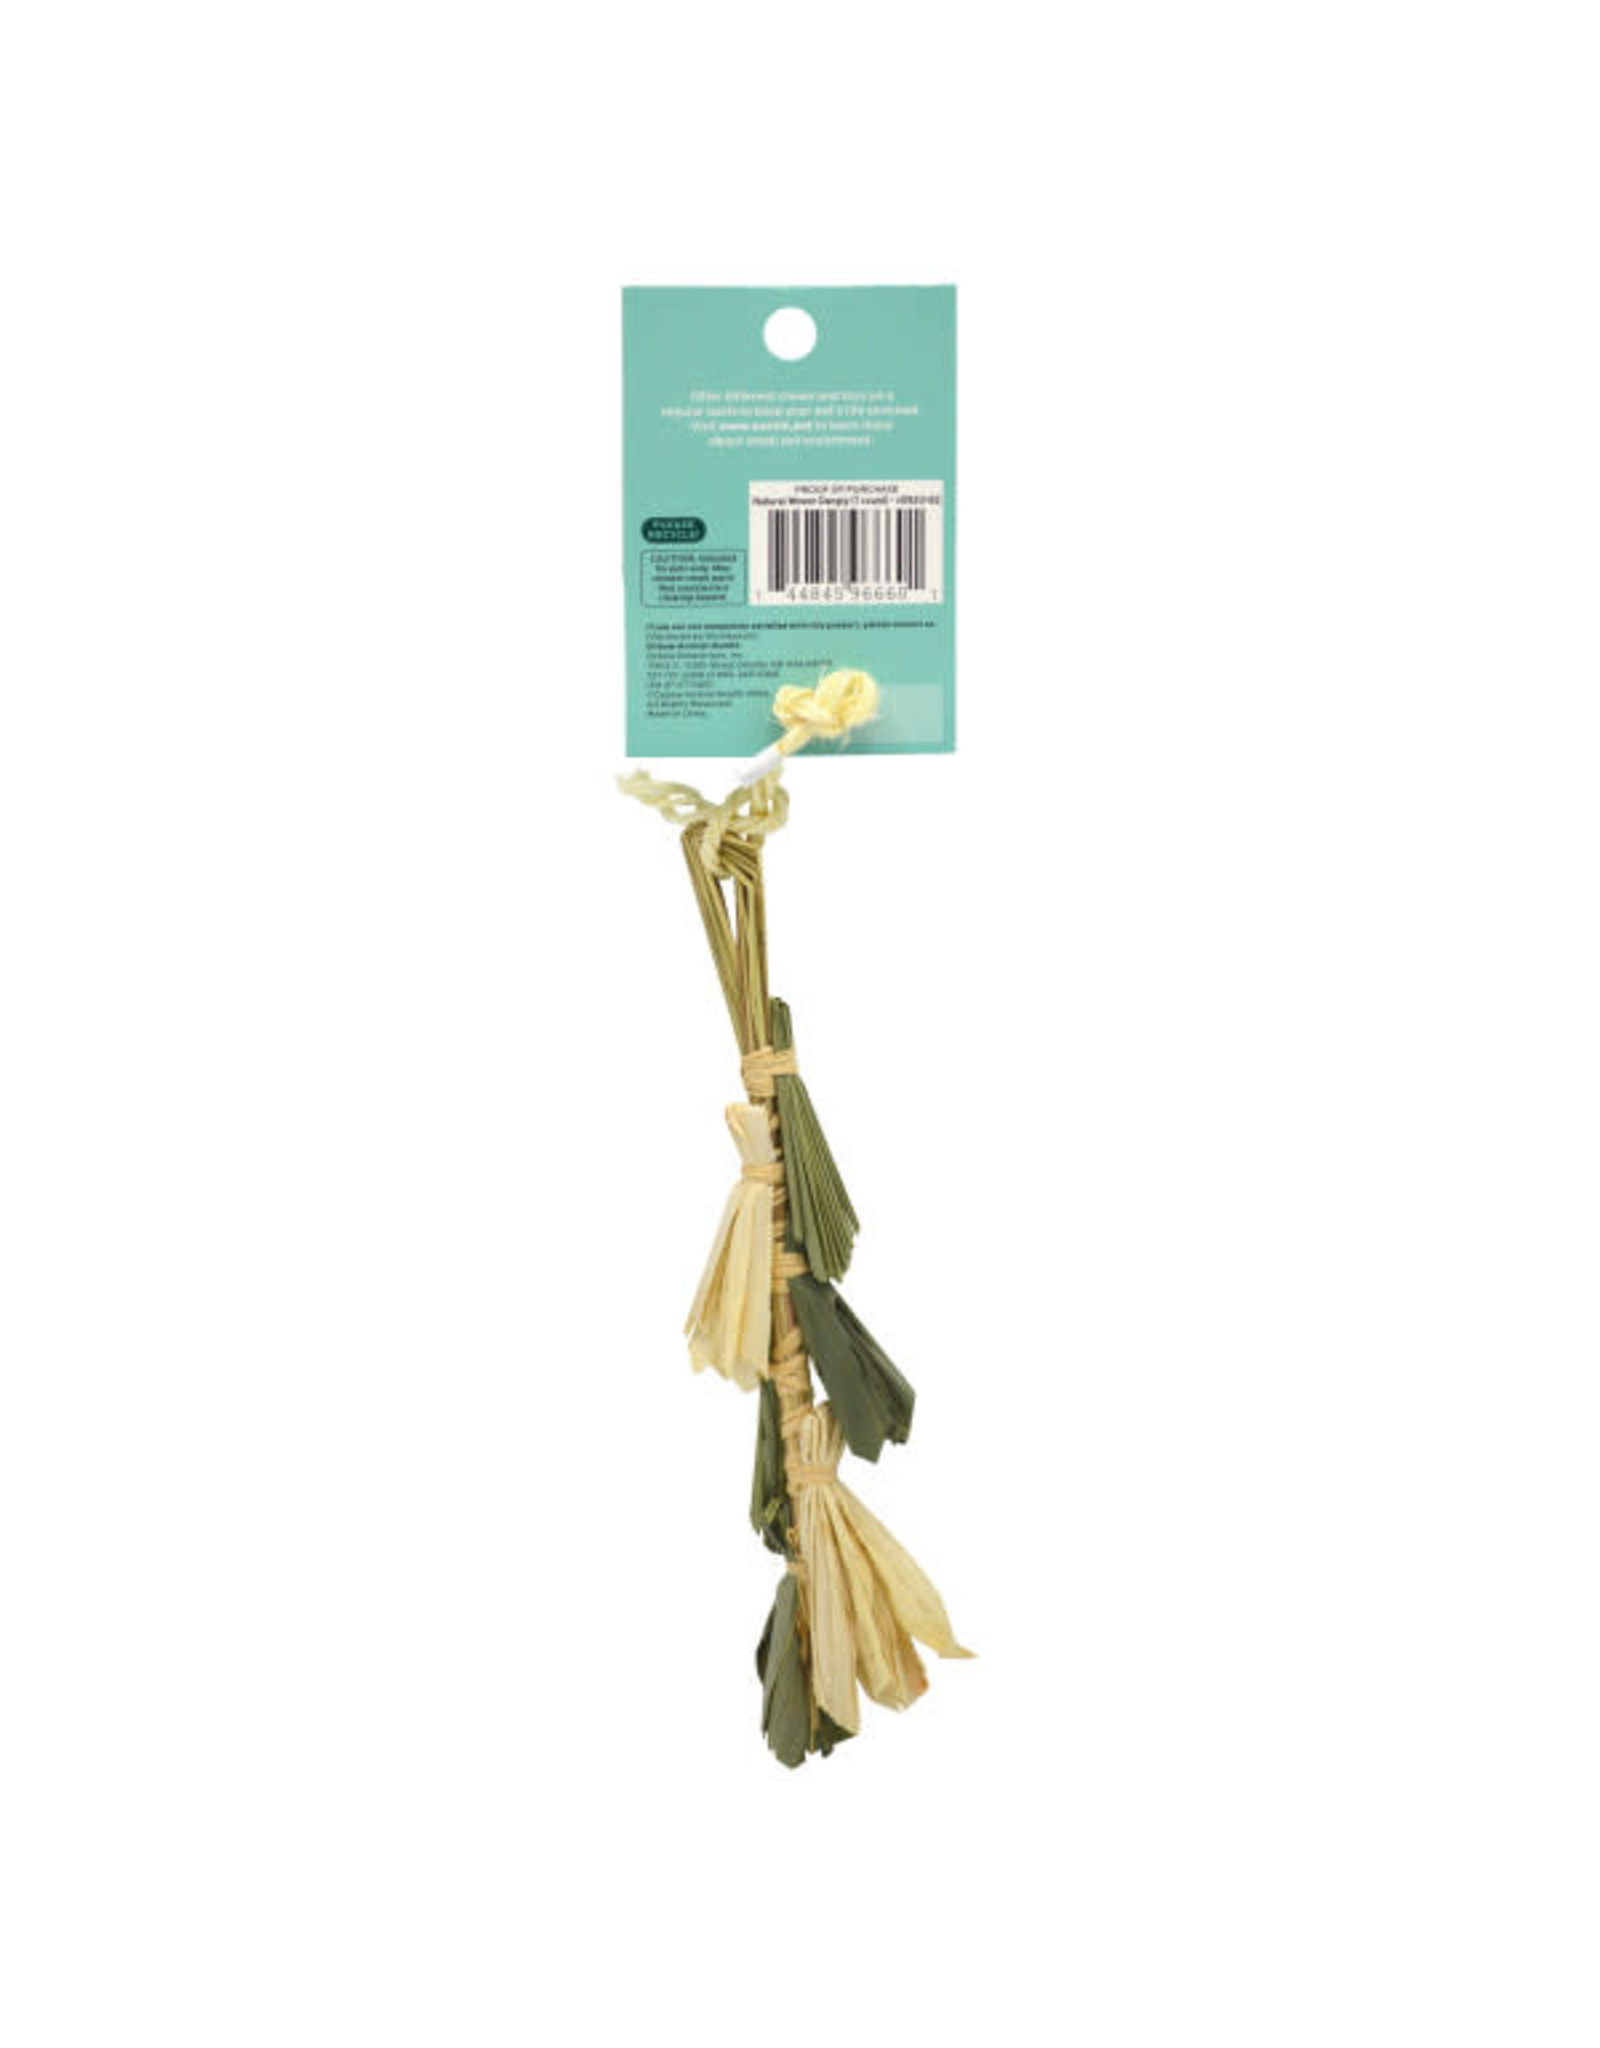 Oxbow Oxbow Enriched Life Natural Woven Dangly